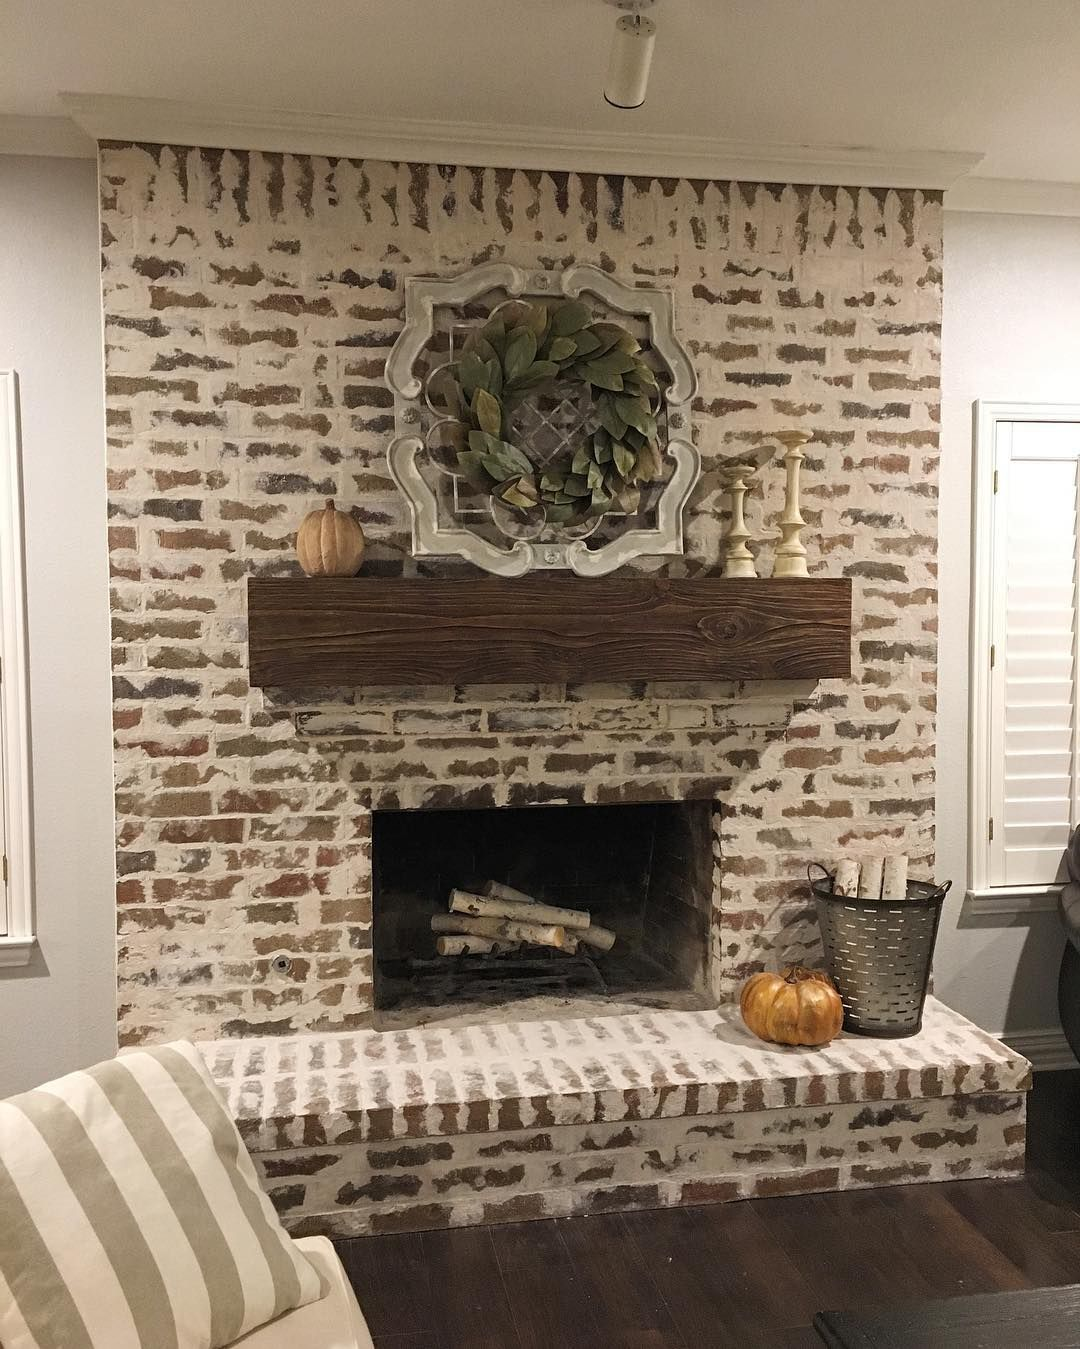 All Done With This German Smear Fireplace Didn T Our Client Decorate It Beautifully For Fall Home Fireplace Brick Fireplace Makeover Fireplace Makeover